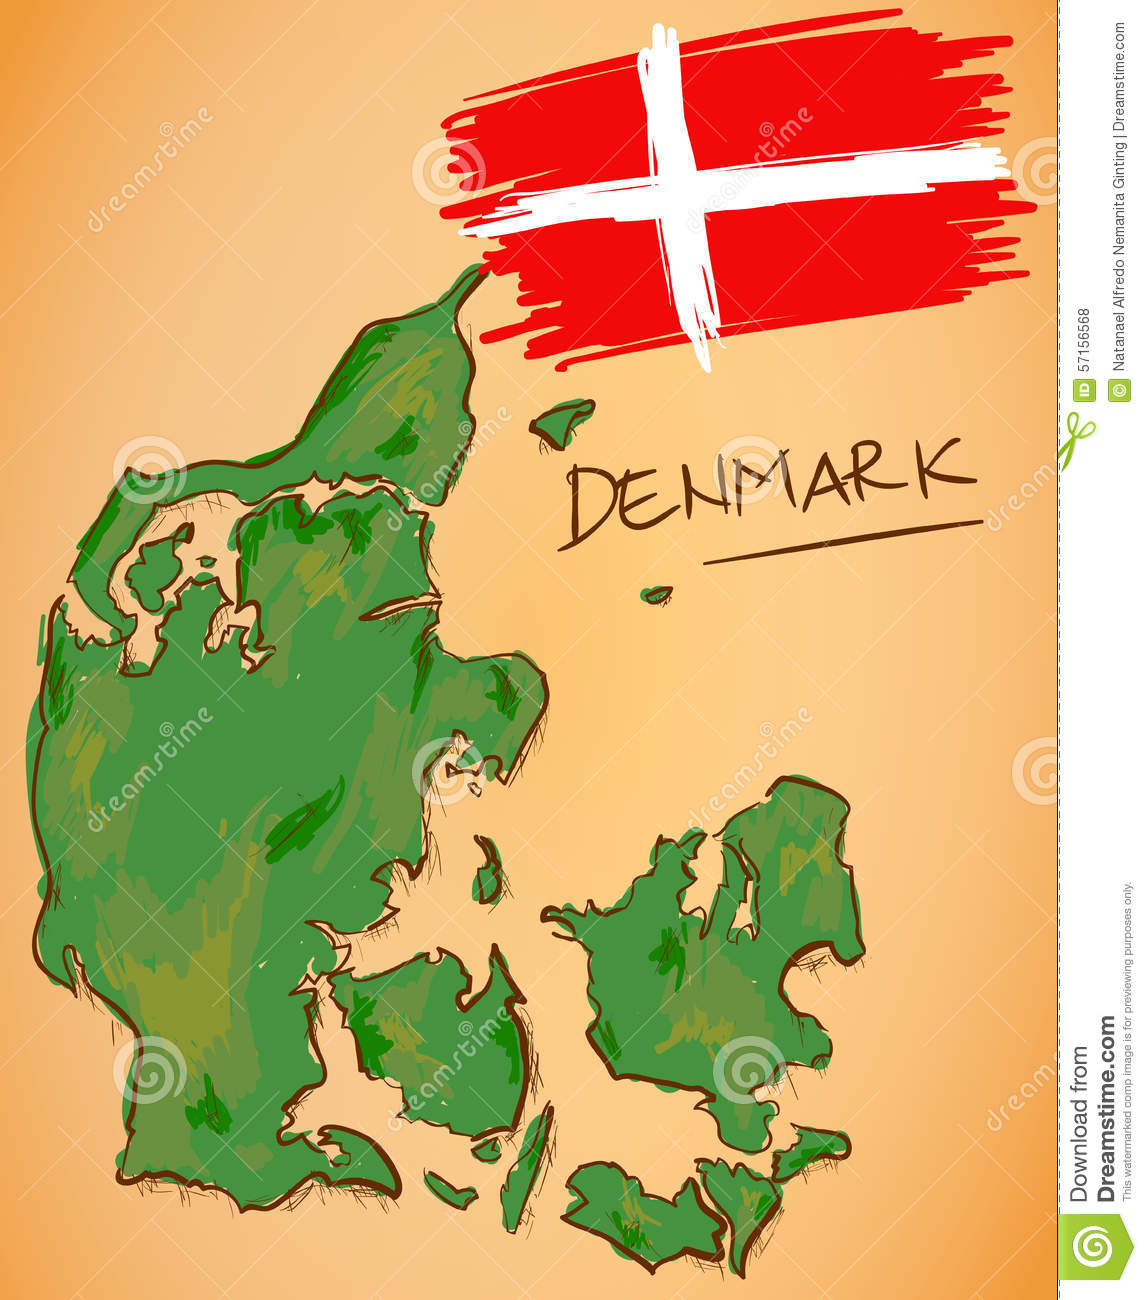 Denmark Map And National Flag Vector Stock Vector Illustration of